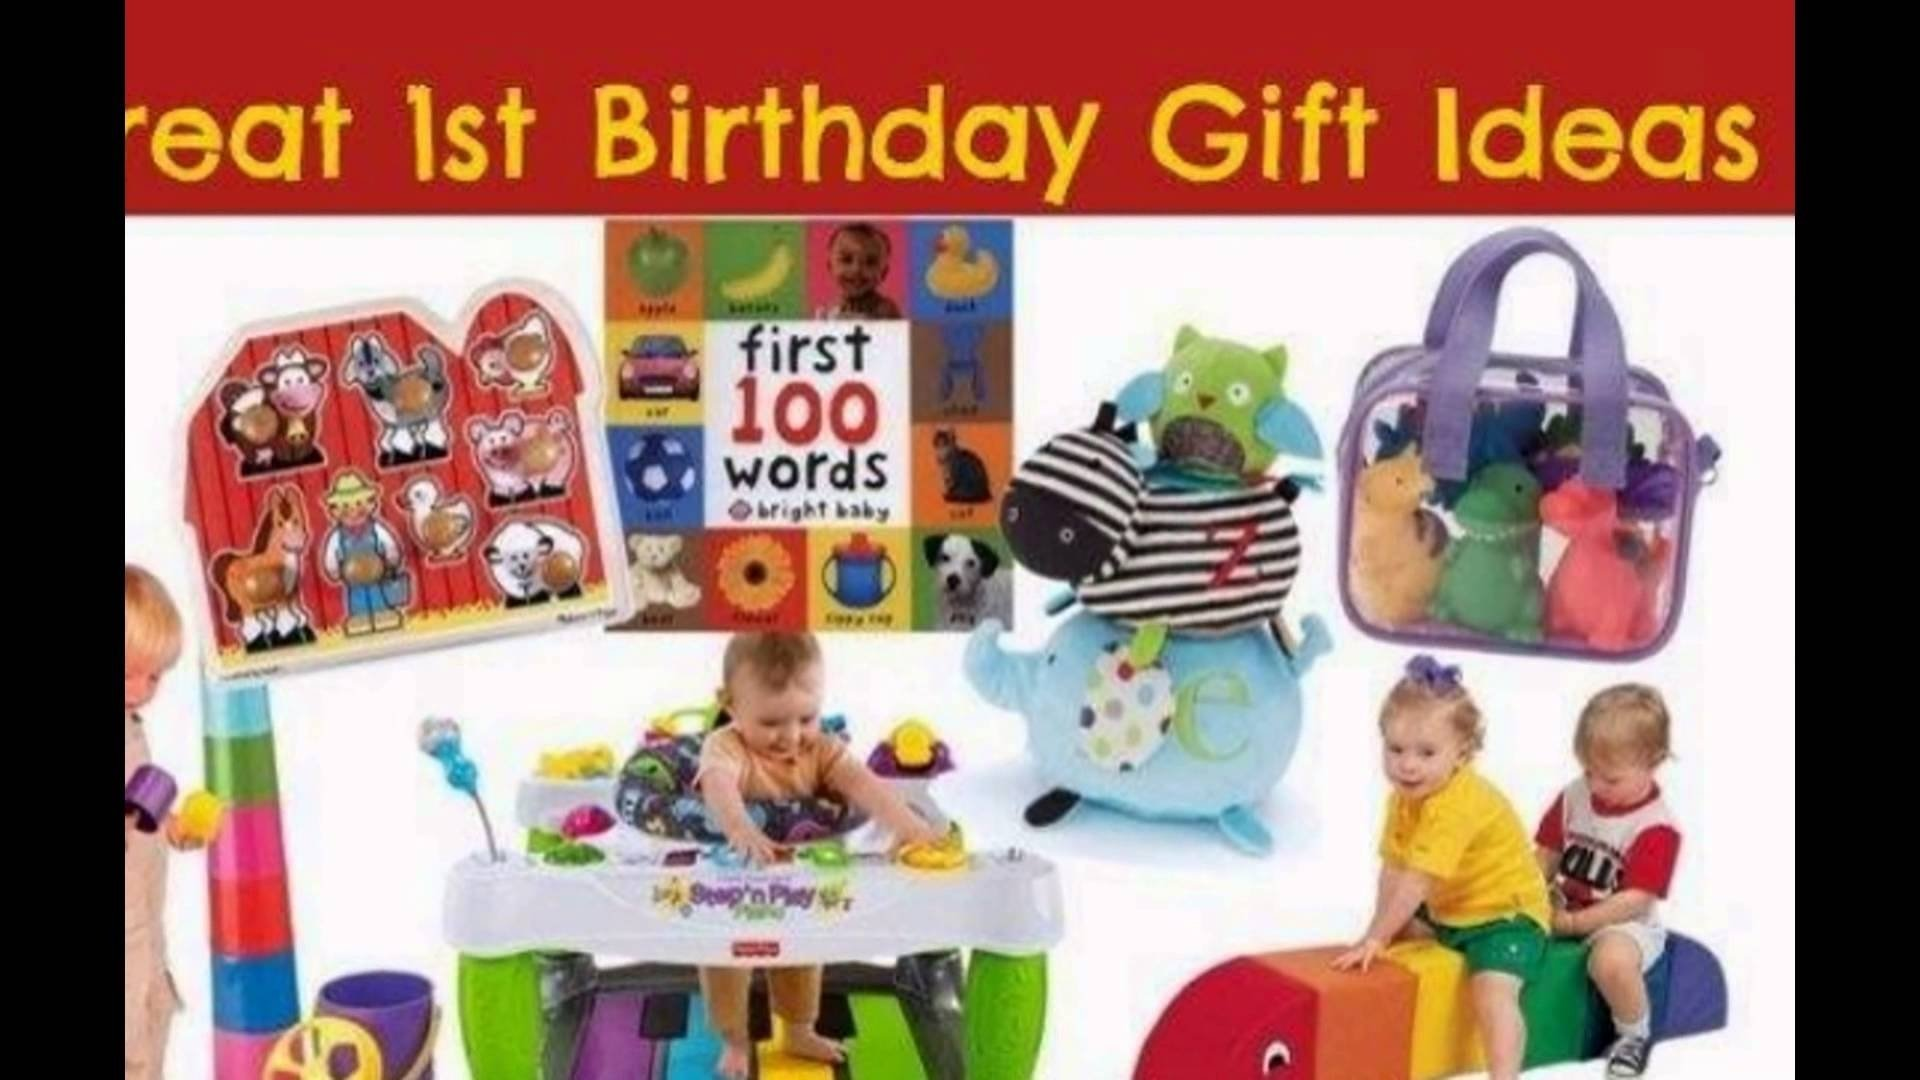 10 Most Recommended Ideas For 1 Year Old Birthday 1 year old birthday gifts ideas youtube 4 2020